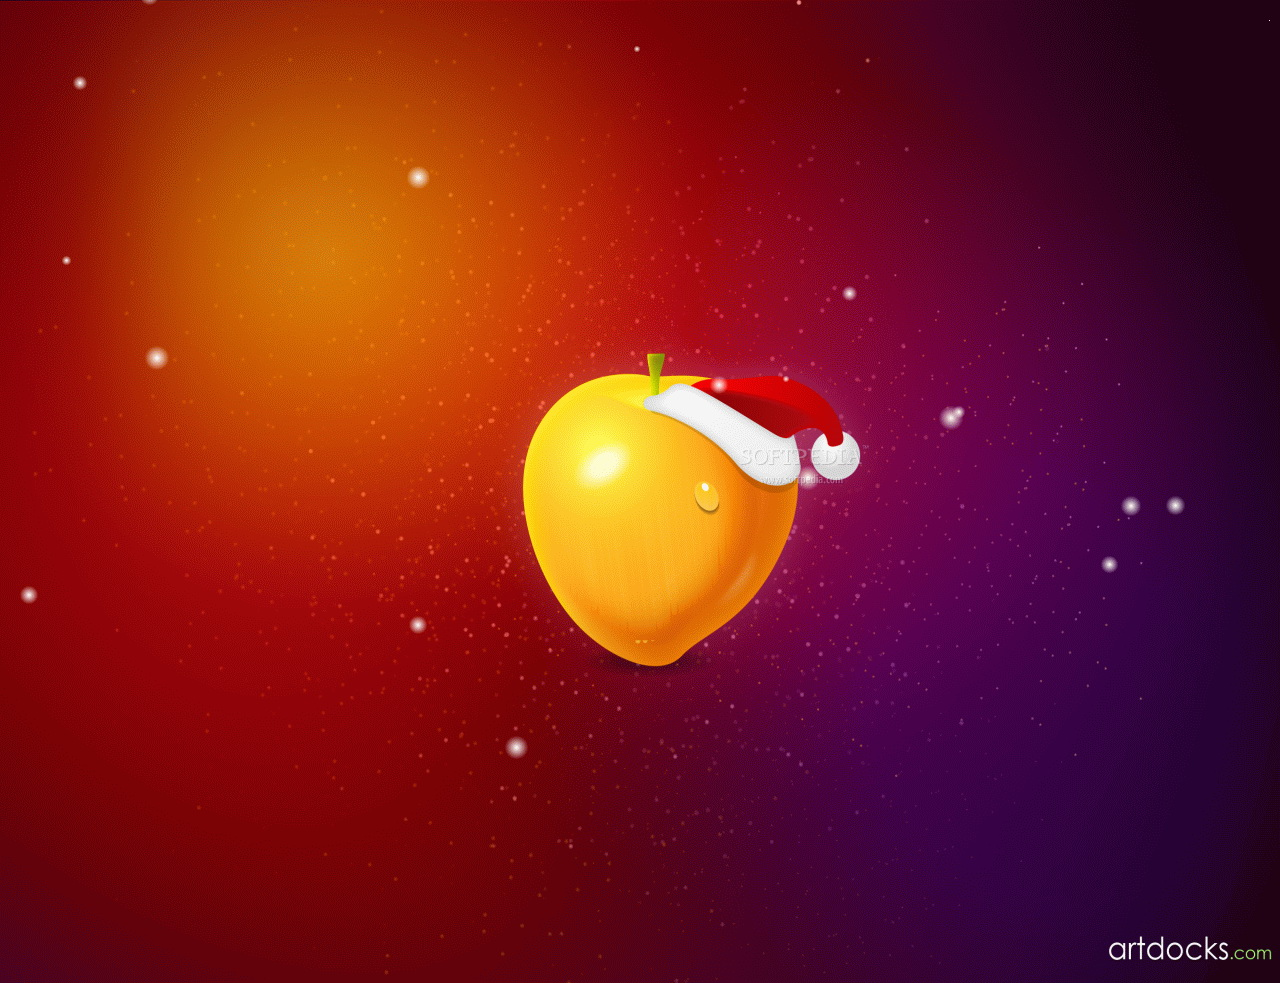 Fruit Christmas Desktop Wallpaper